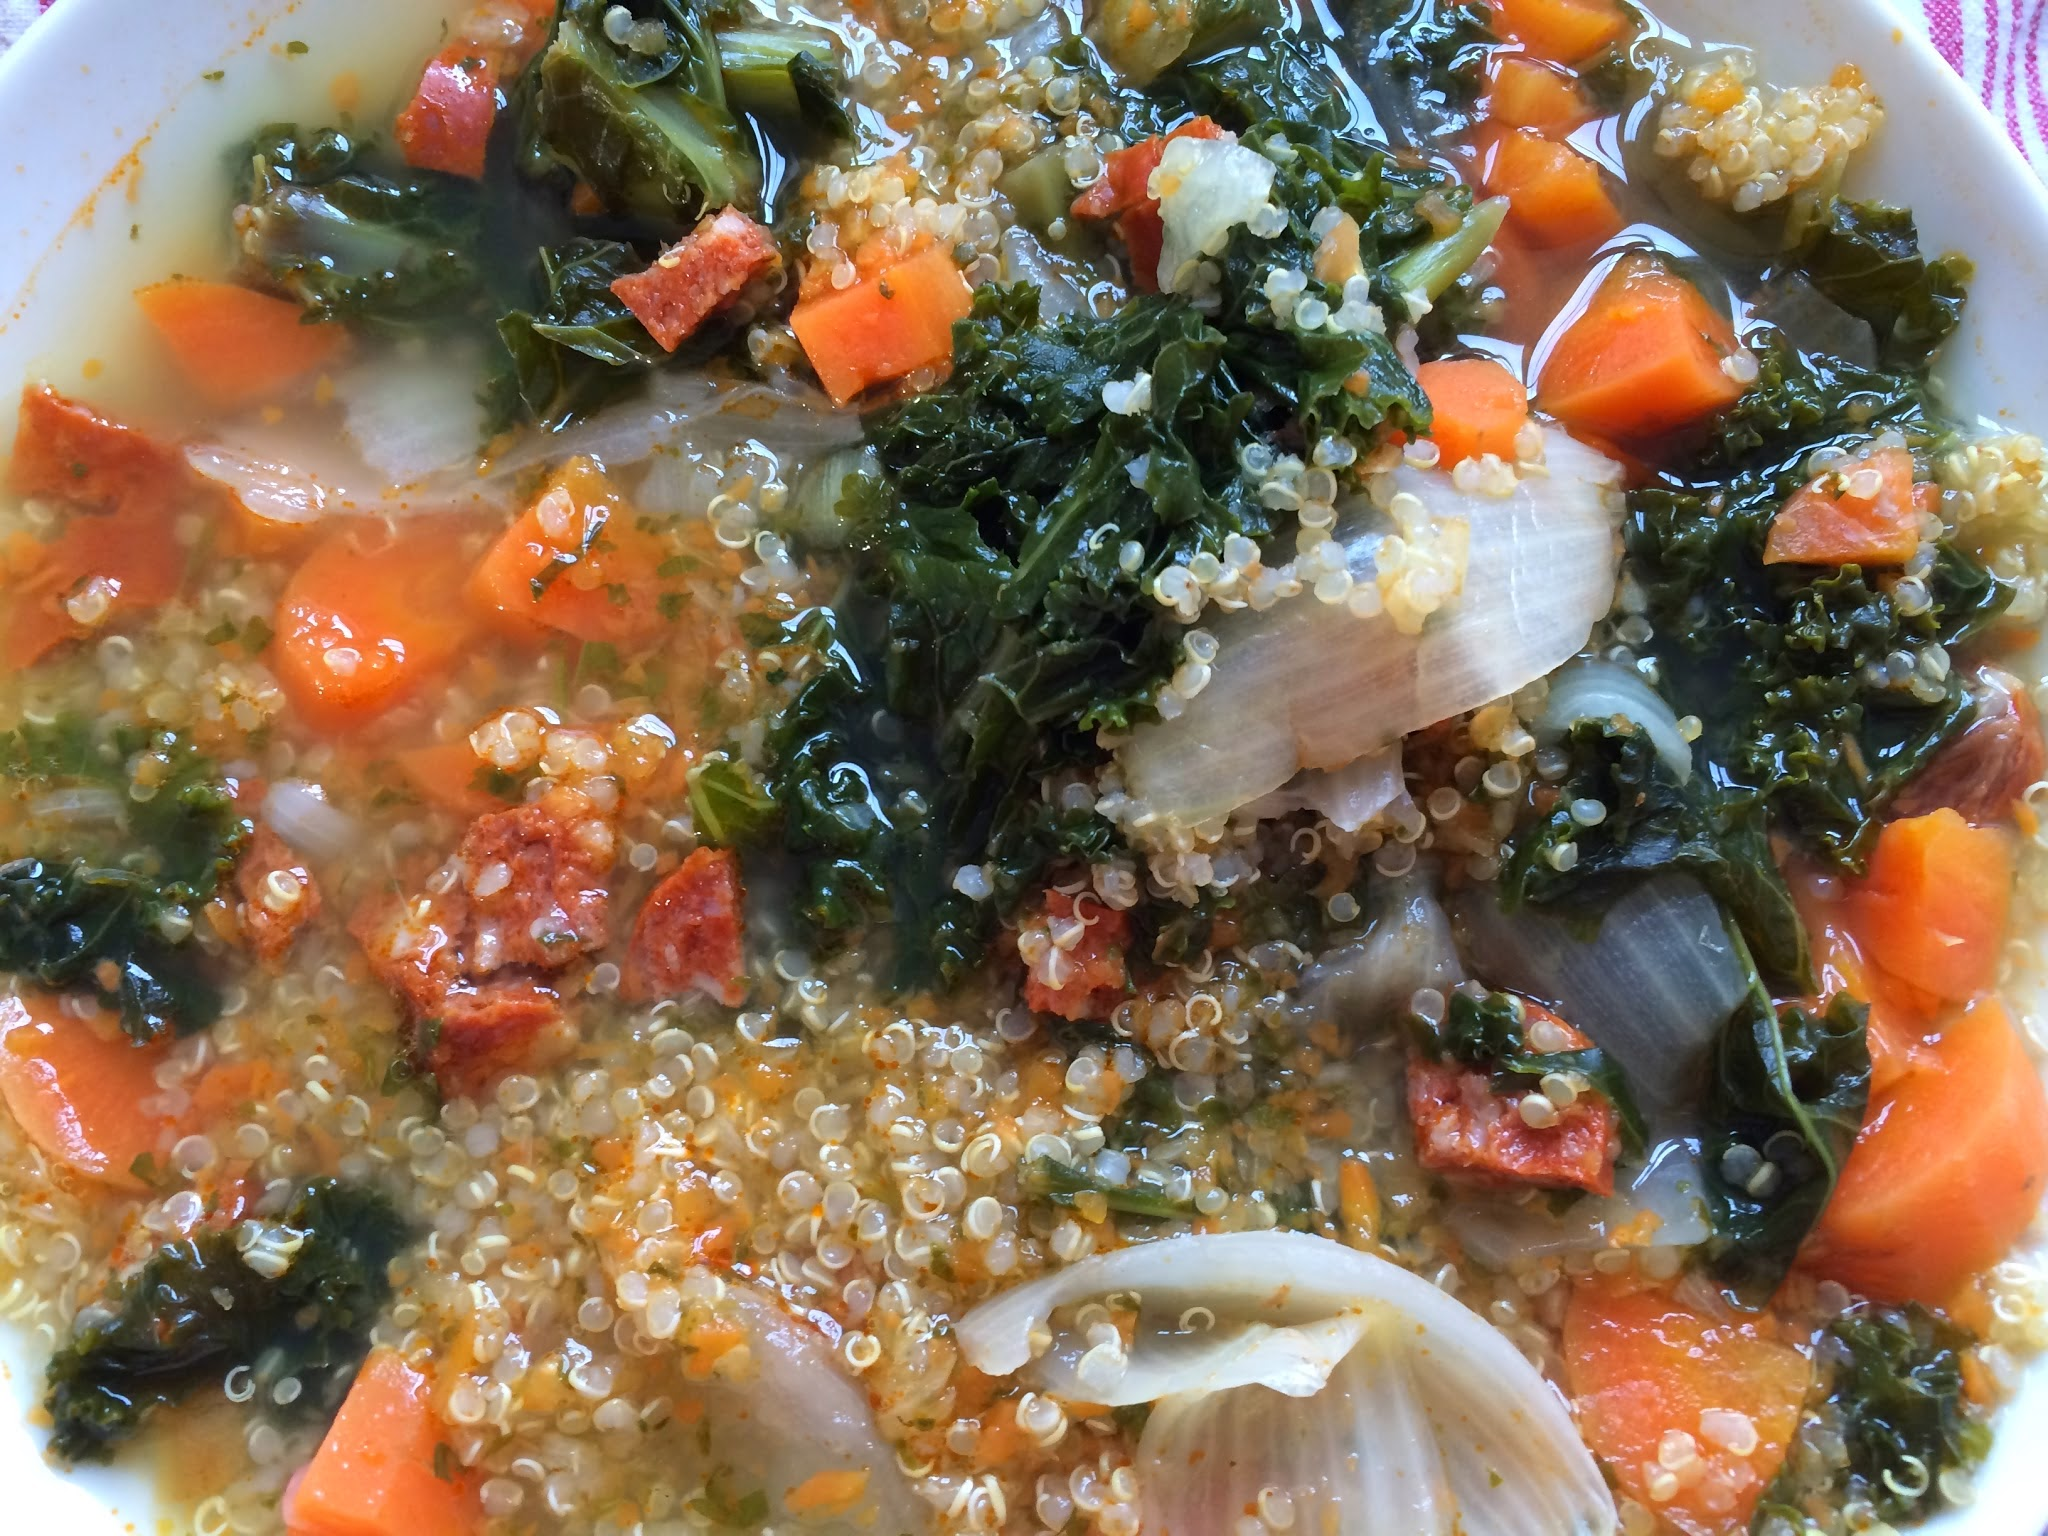 Feisty Tapas Thermomix Caldo cooked from scratch in the Thermomix, with kale, carrots and chorizo